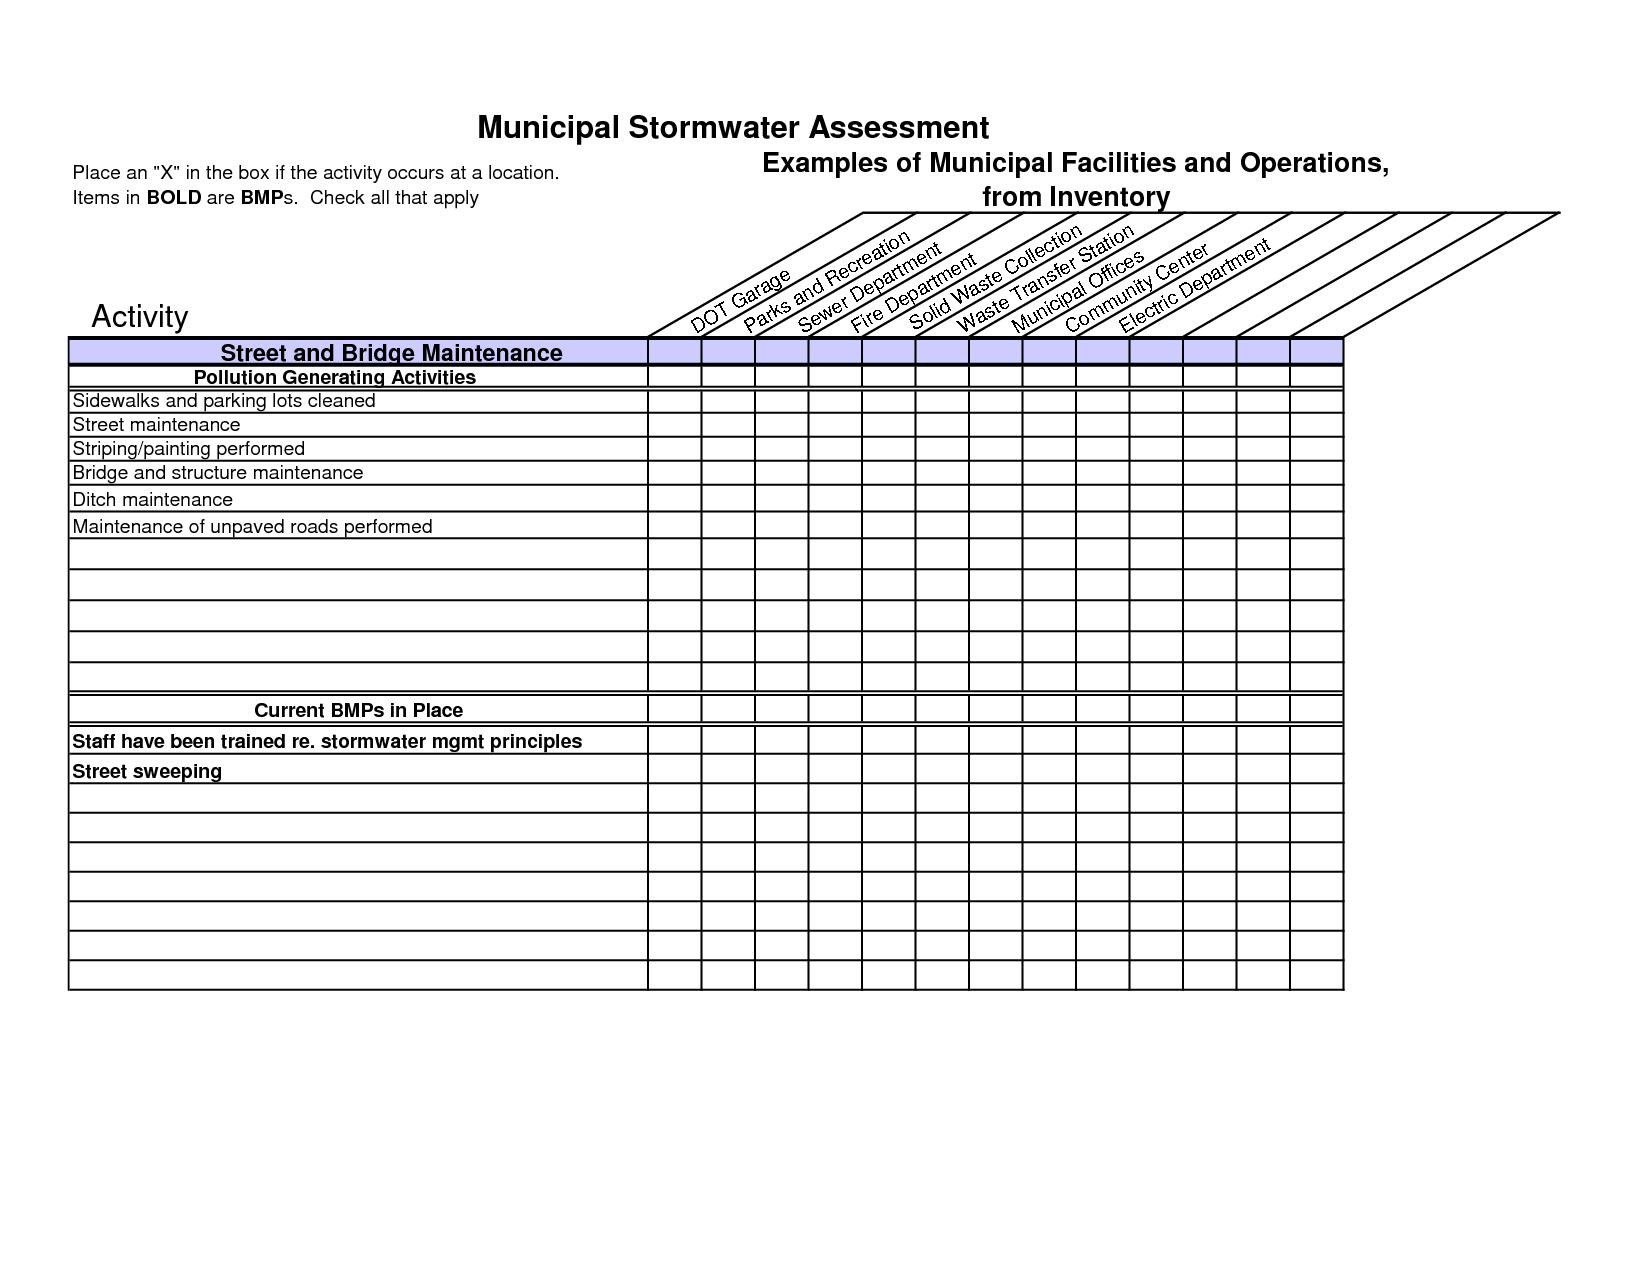 Wine Cellar Inventory Spreadsheet and Restaurant Liquor Inventory Spreadsheet Google Search